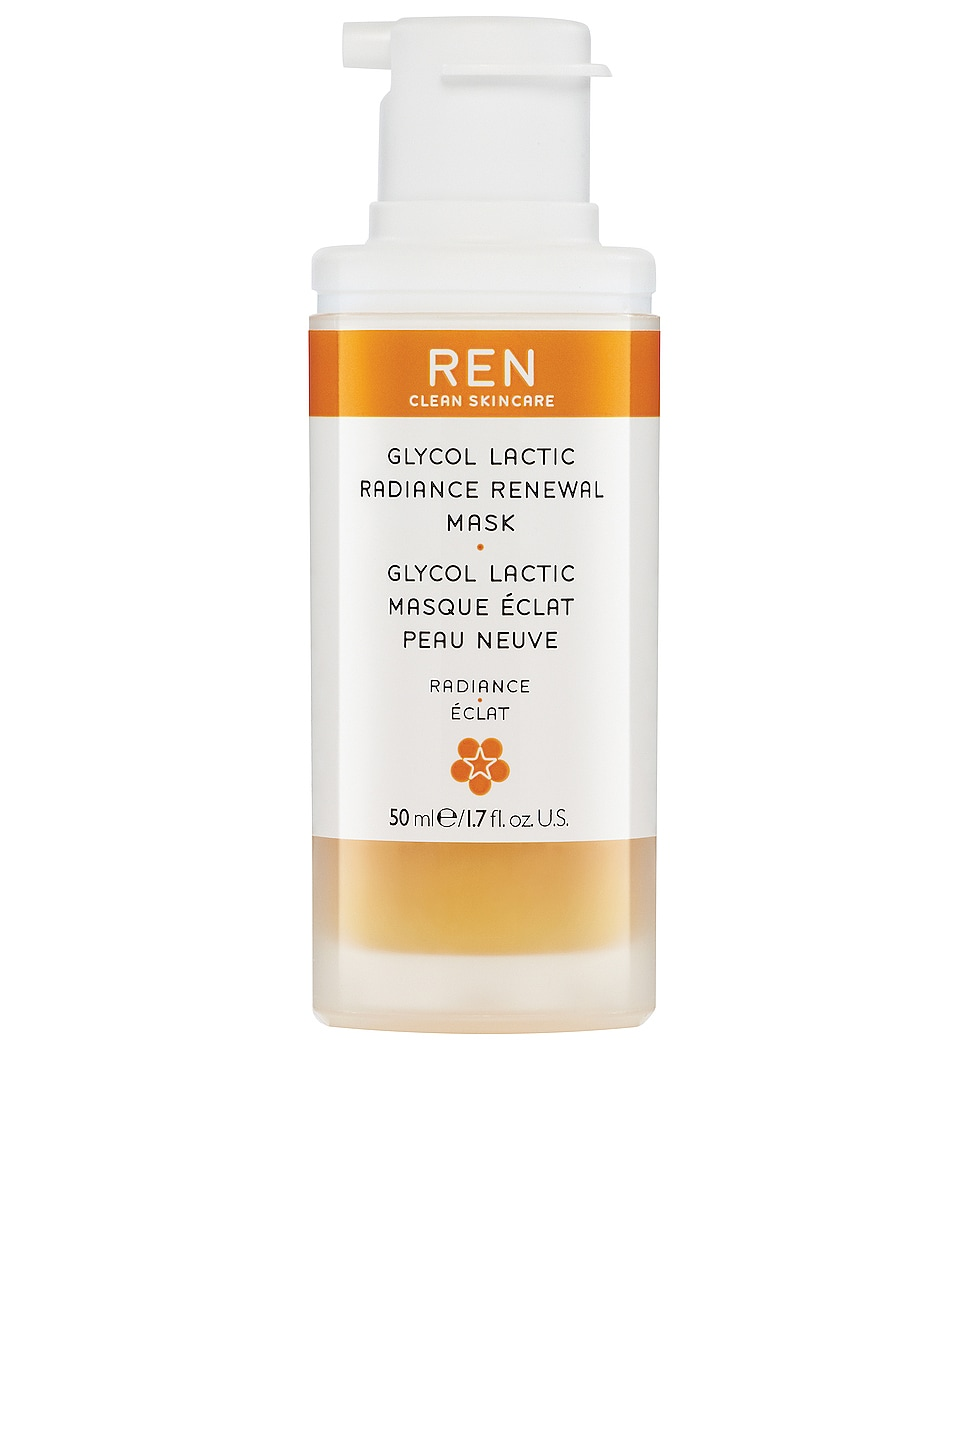 REN Clean Skincare Radiance Glycol Lactic Radiance Renewal Mask